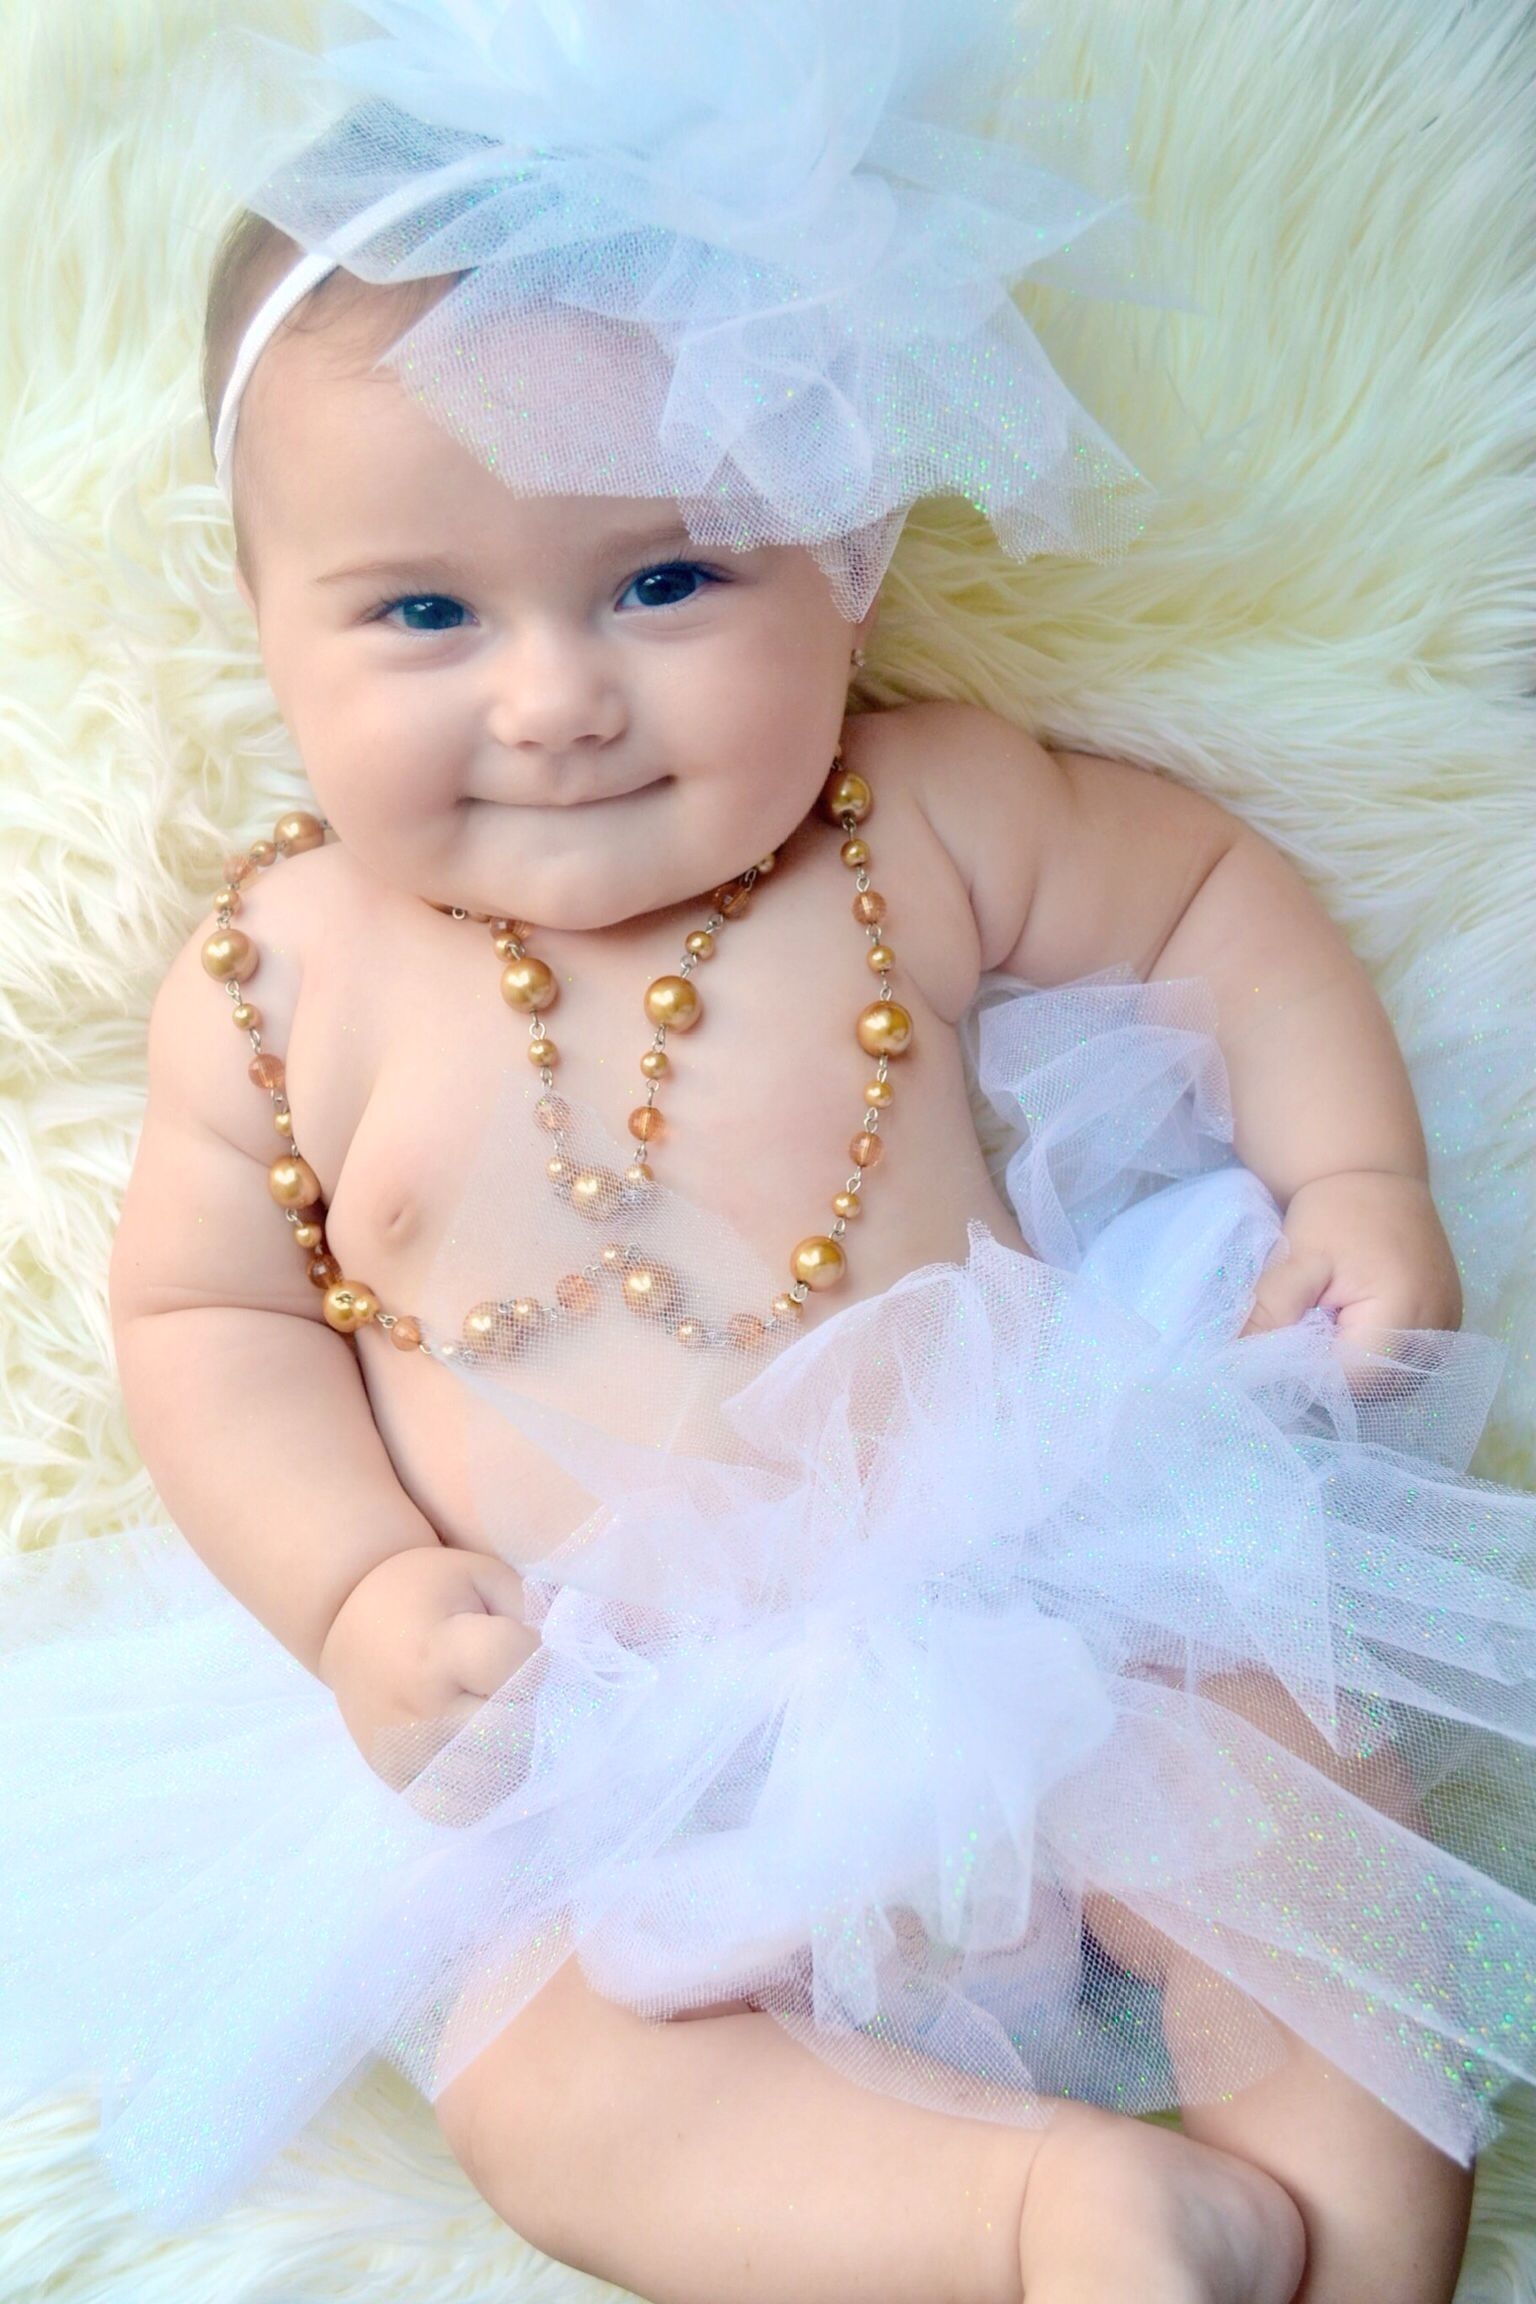 Photoshoot Ideas For Baby Girl At Home : photoshoot, ideas, ✨✨, Months, Picture, Ideas, ♡♡♡♡♡♡, Photoshoot, Daught…, Pictures,, Girl,, Month